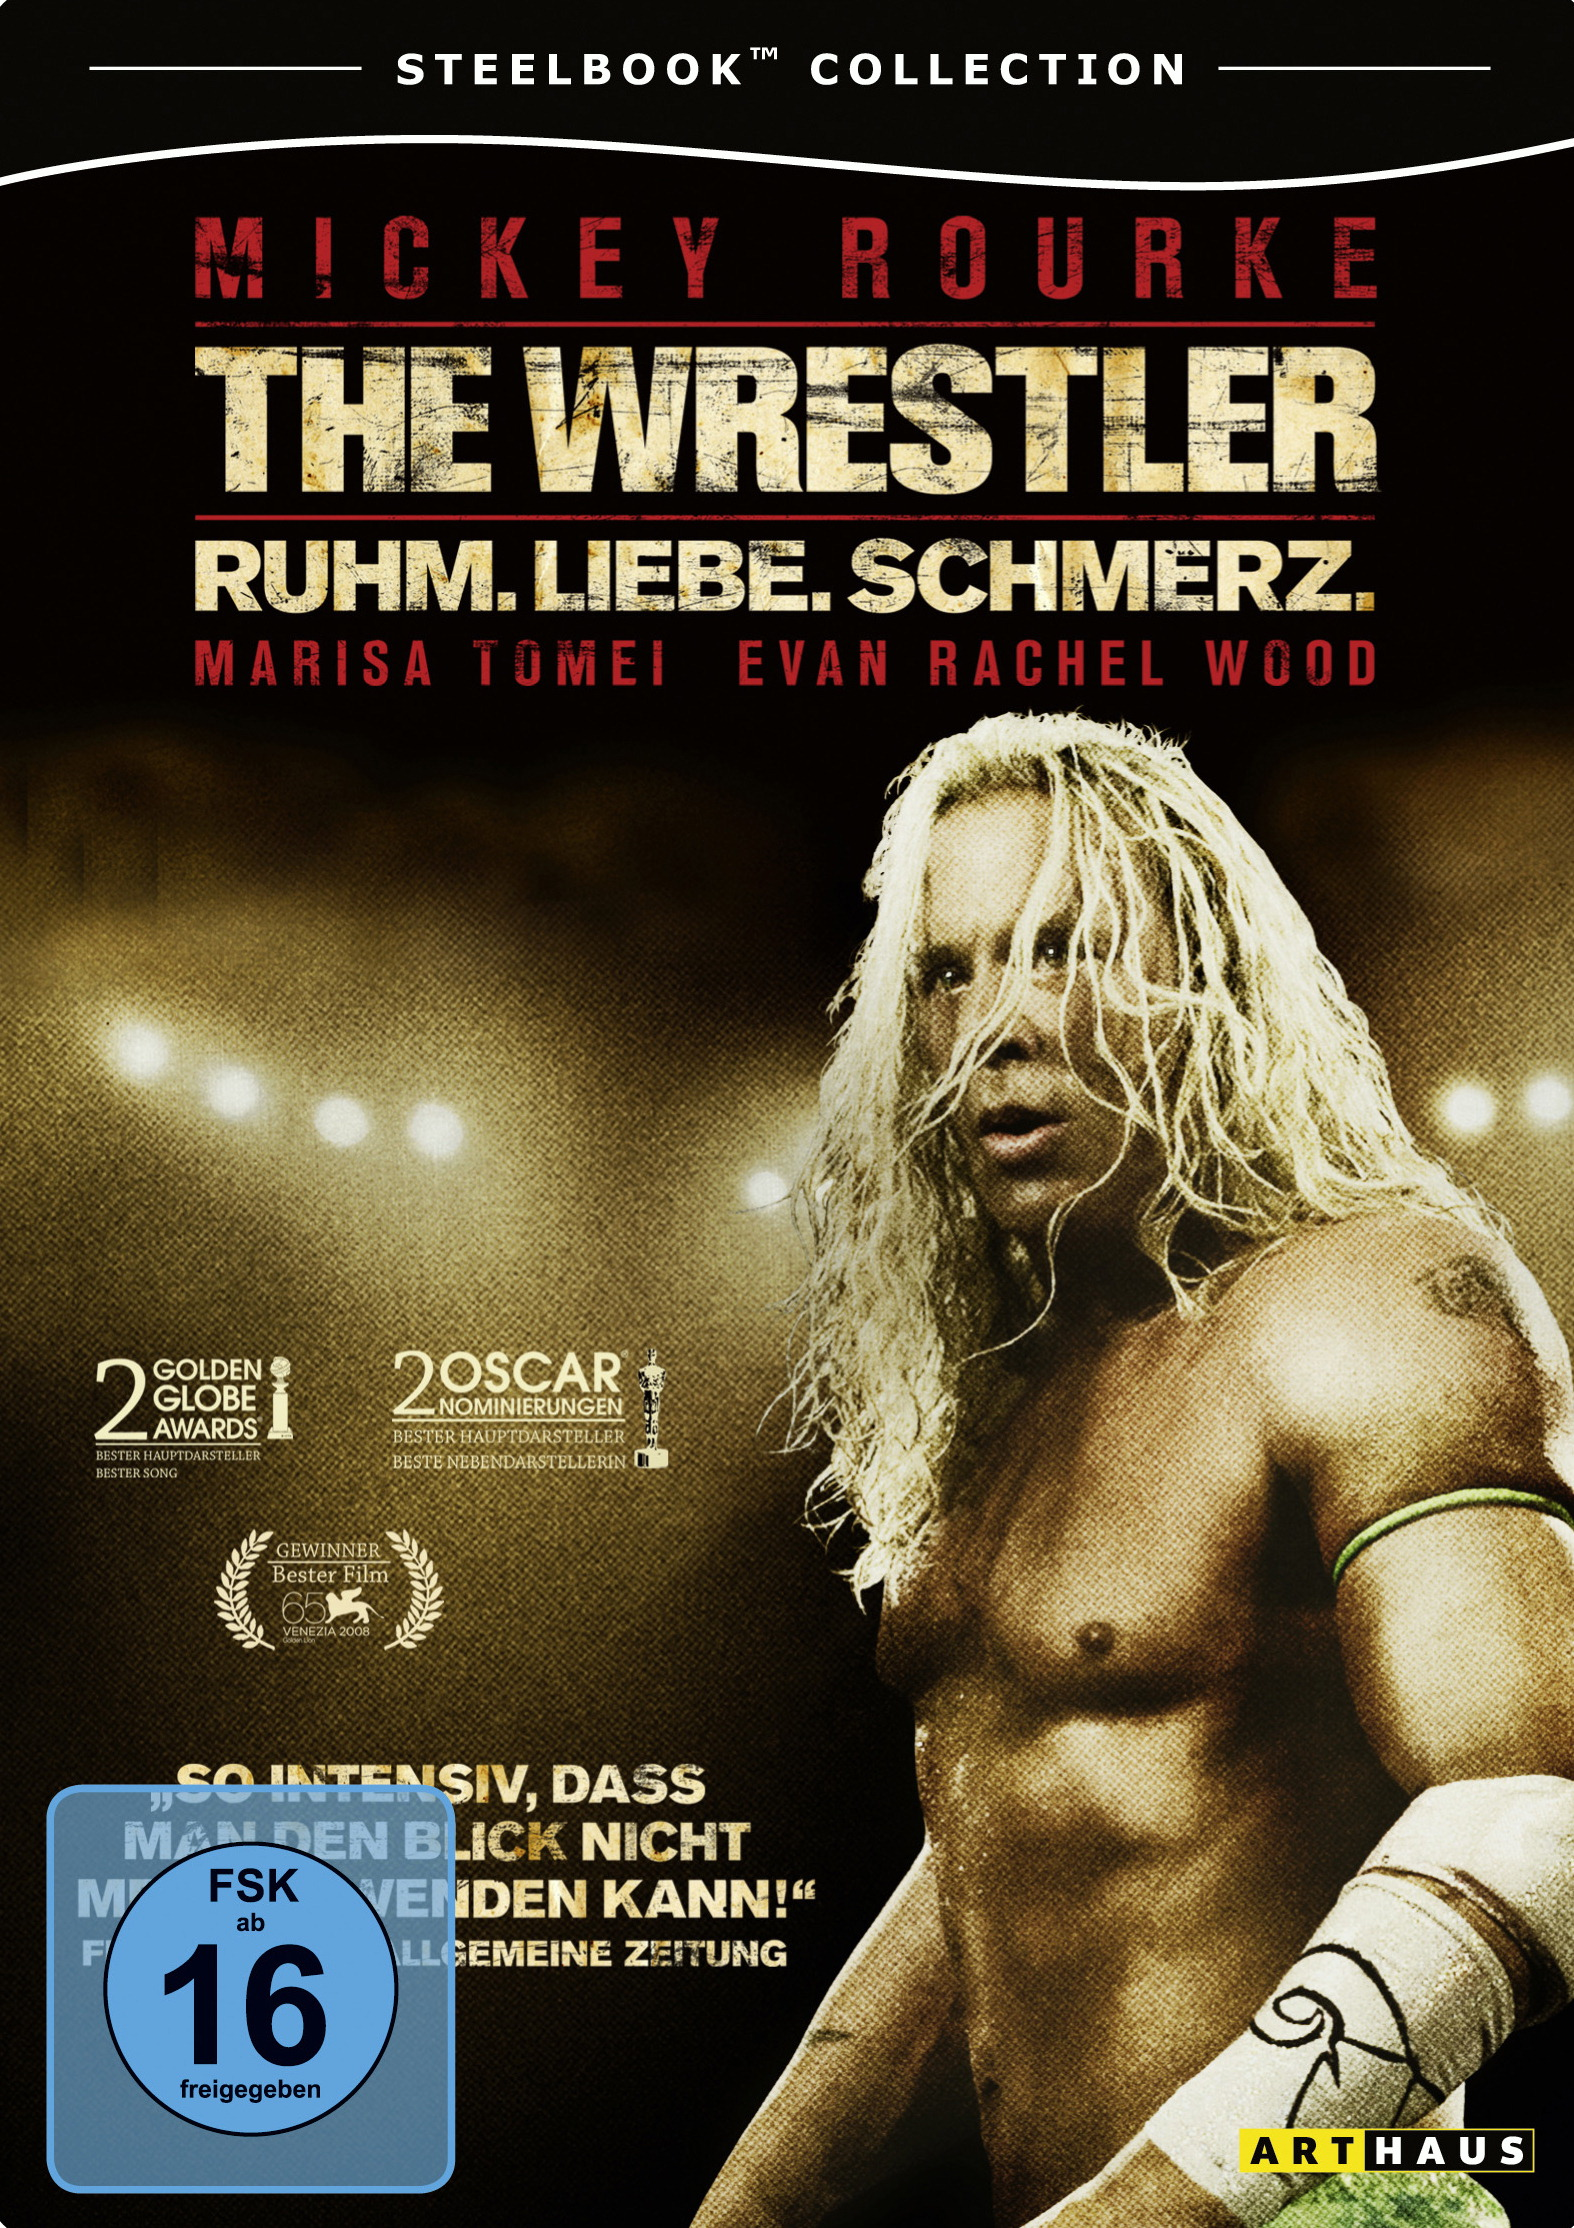 The Wrestler (Steelbook Collection) Poster